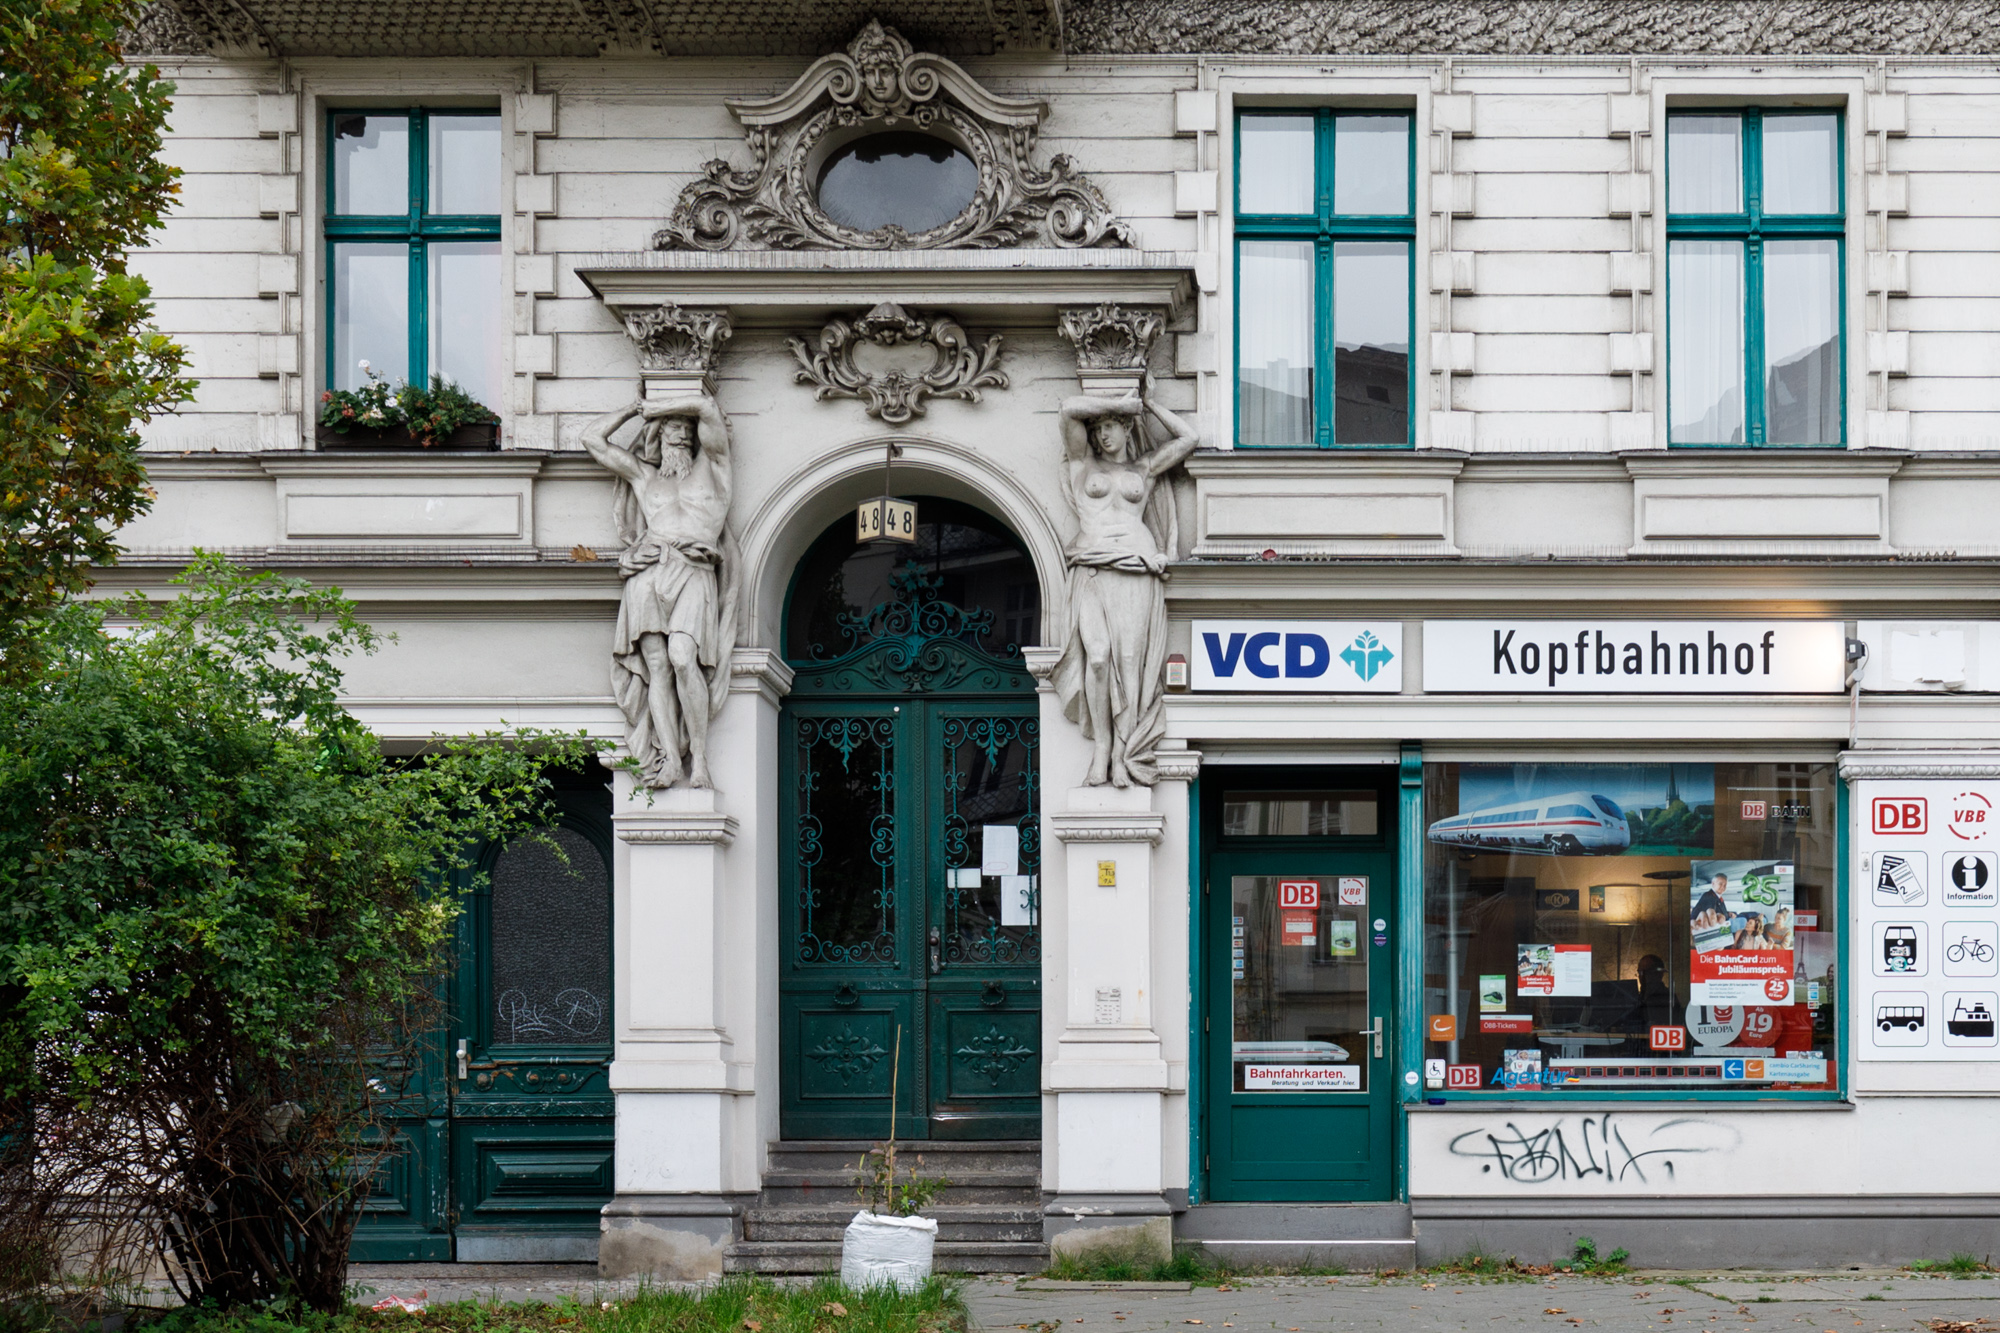 Kopfbahnhof a travel agent specialising in train tickets in the former Risiko bar / club at Yorckstrasse 48 in Berlin